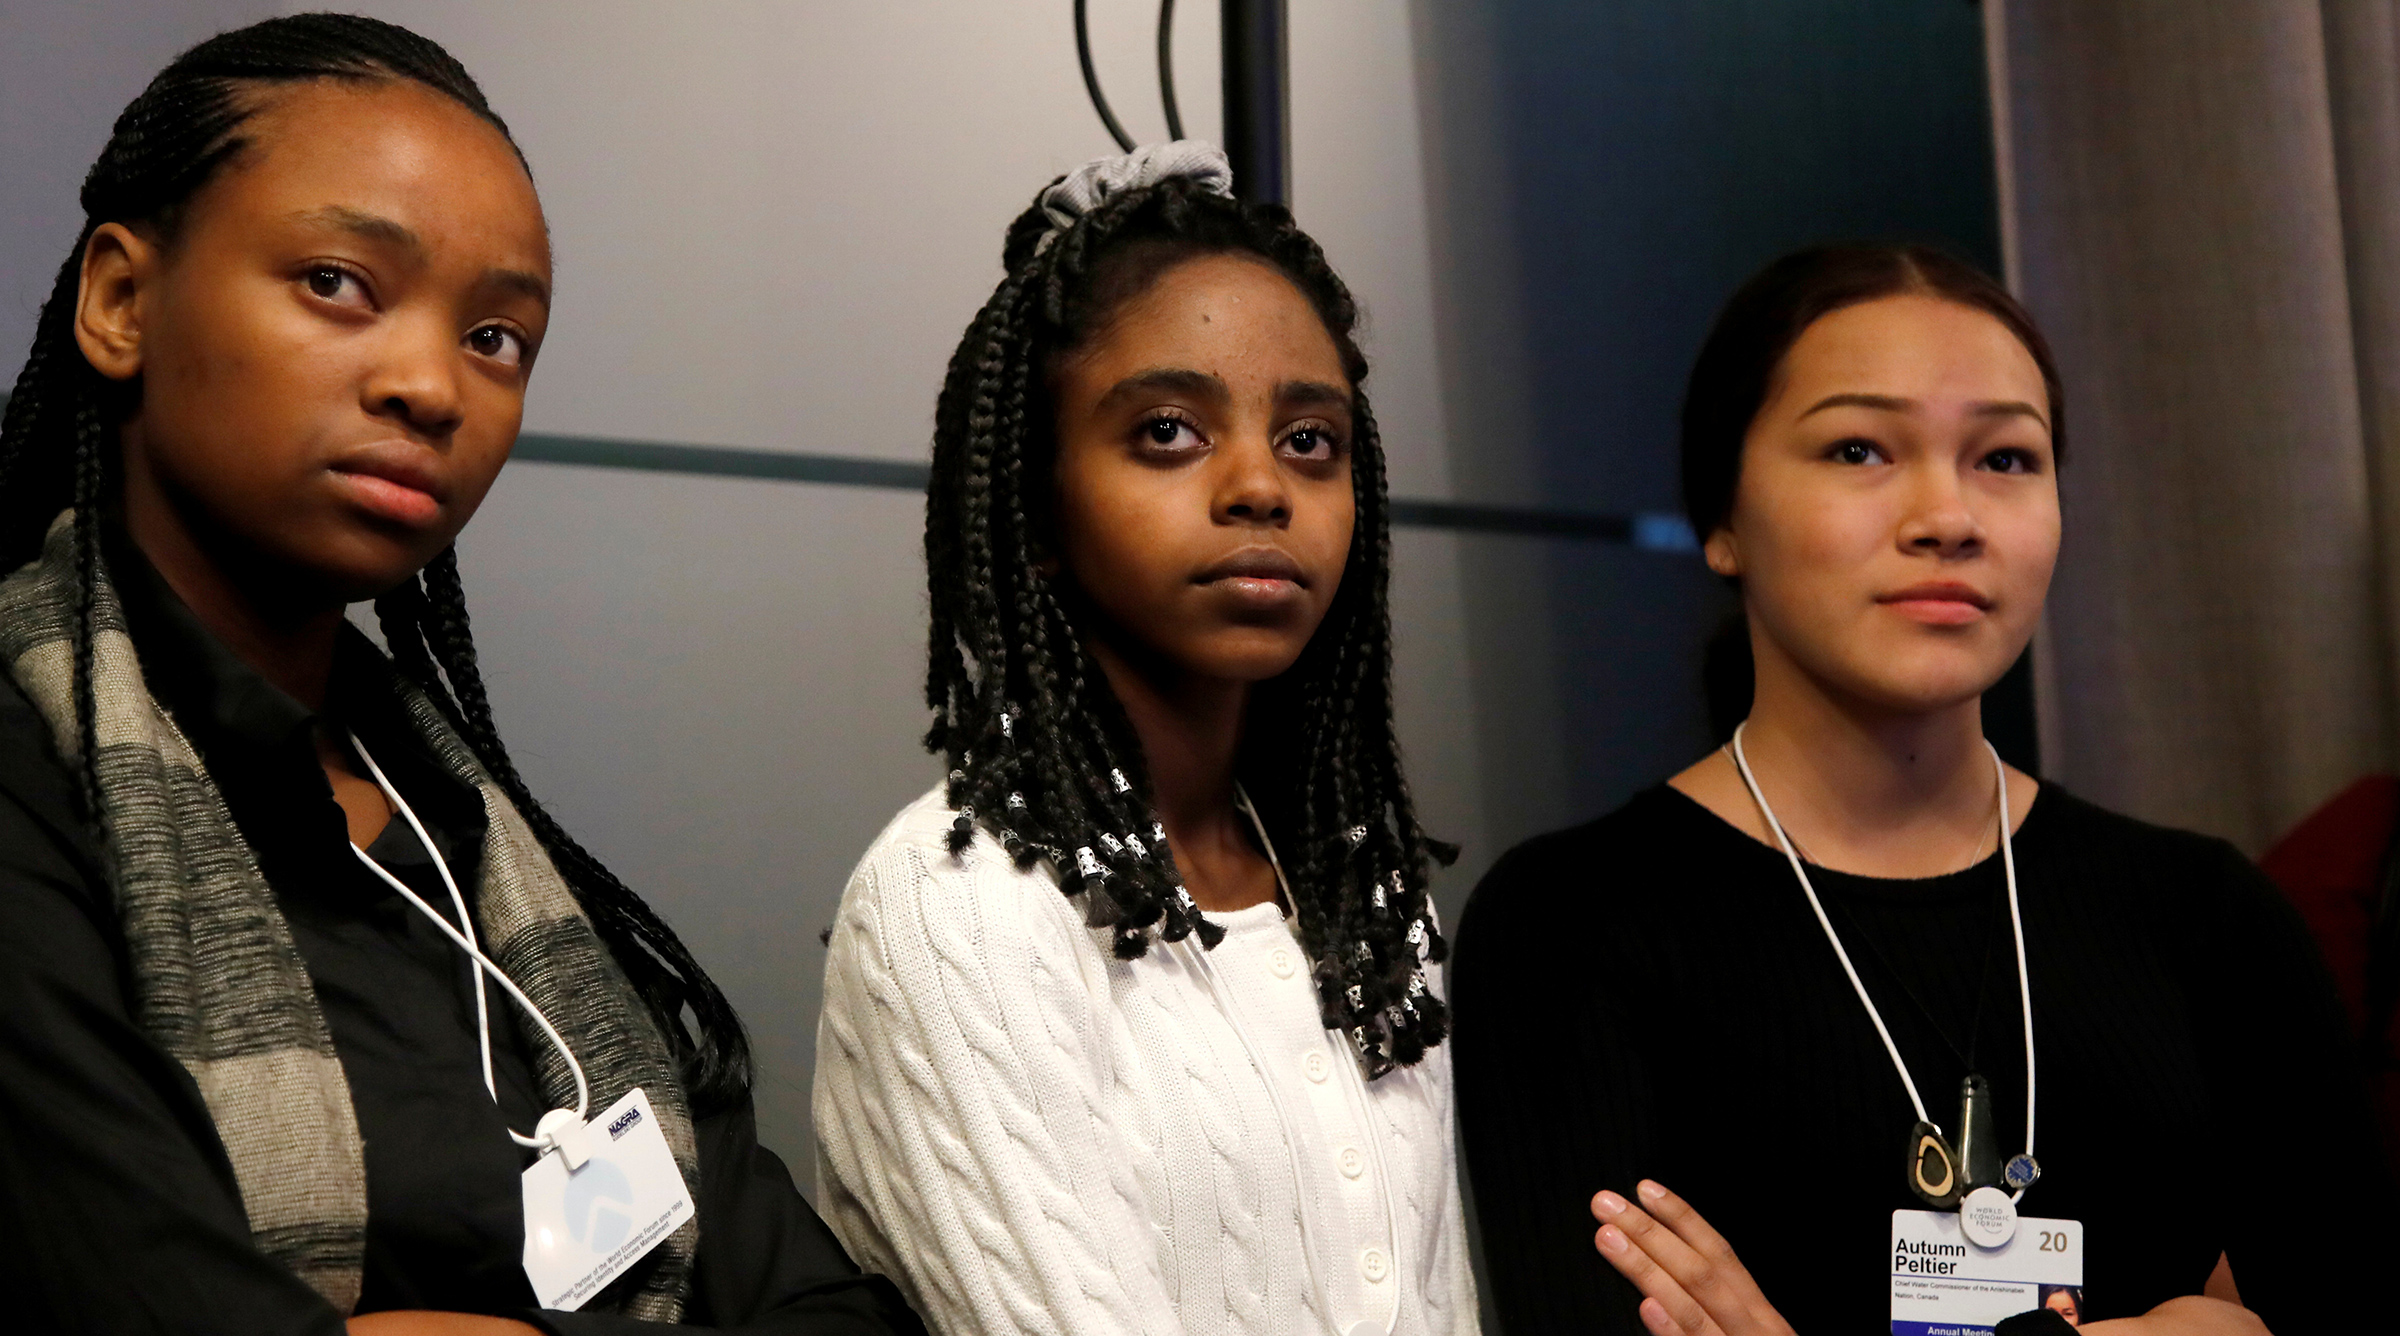 Naomi Wadler, center, takes part in a forum with Ayakha Melithafa and Autumn Peltier during the World Economic Forum in Davos, Switzerland Jan. 20, 2020.